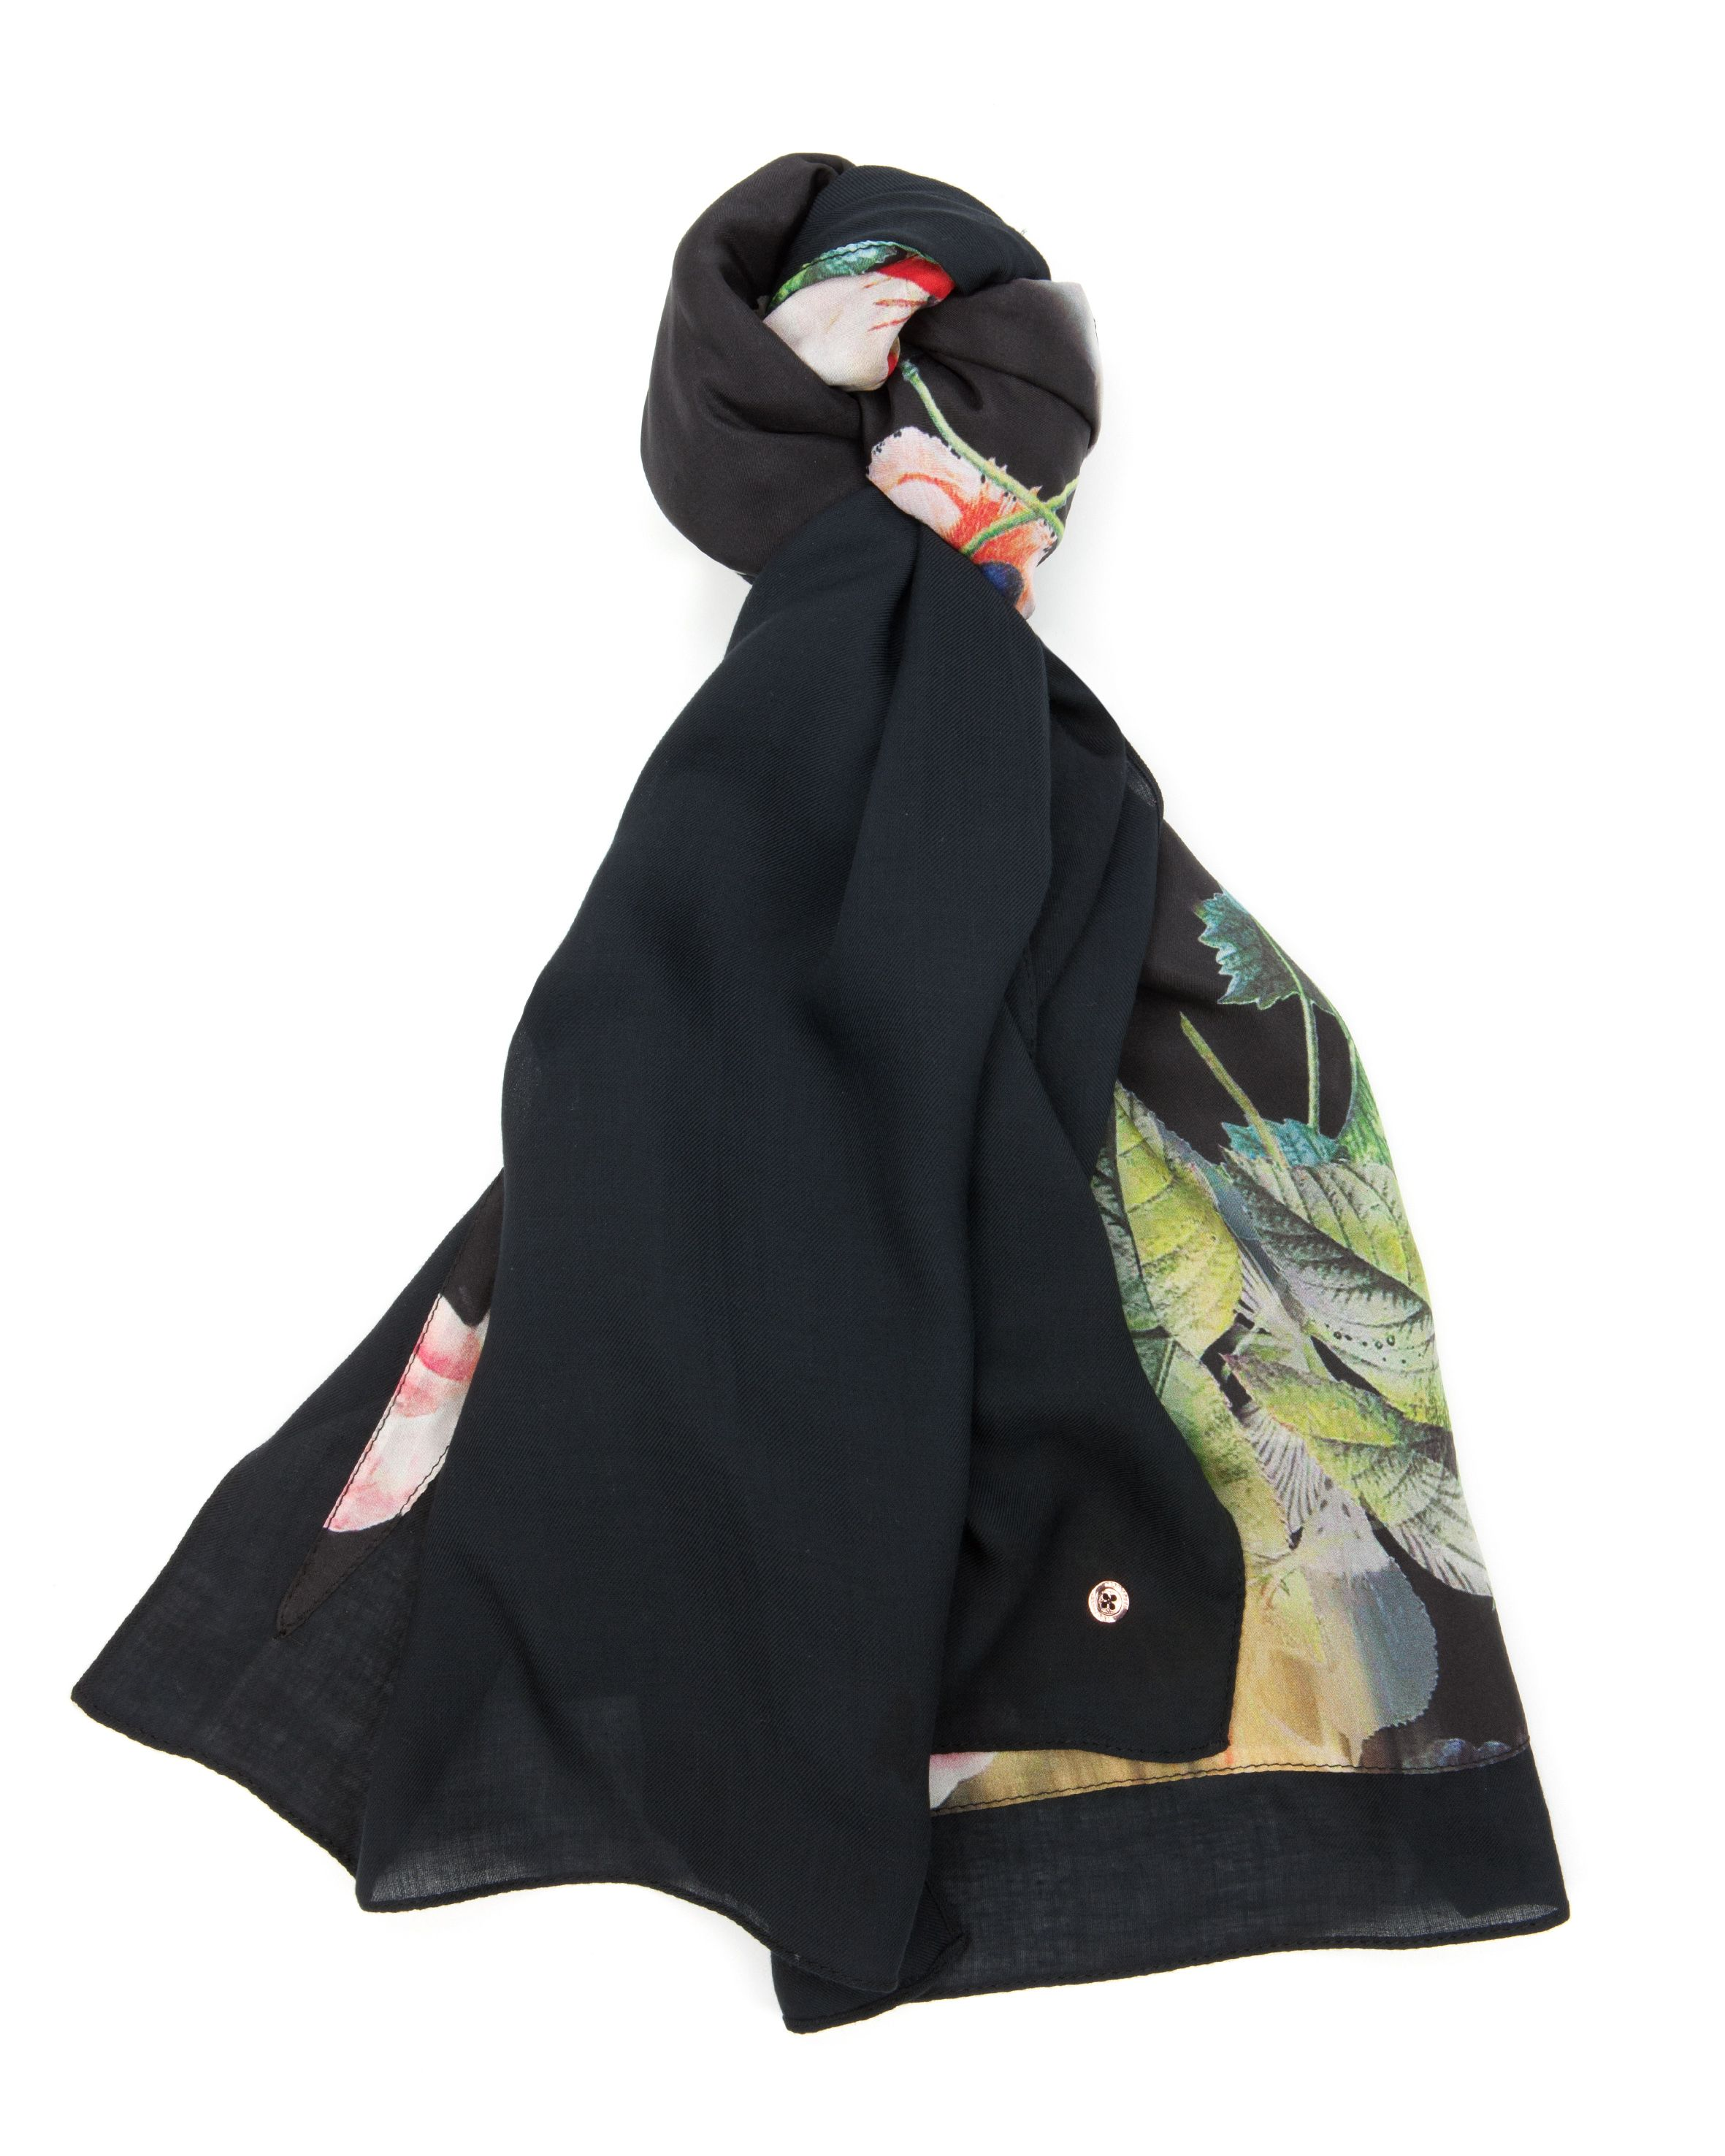 Opuley opulent bloom split scarf